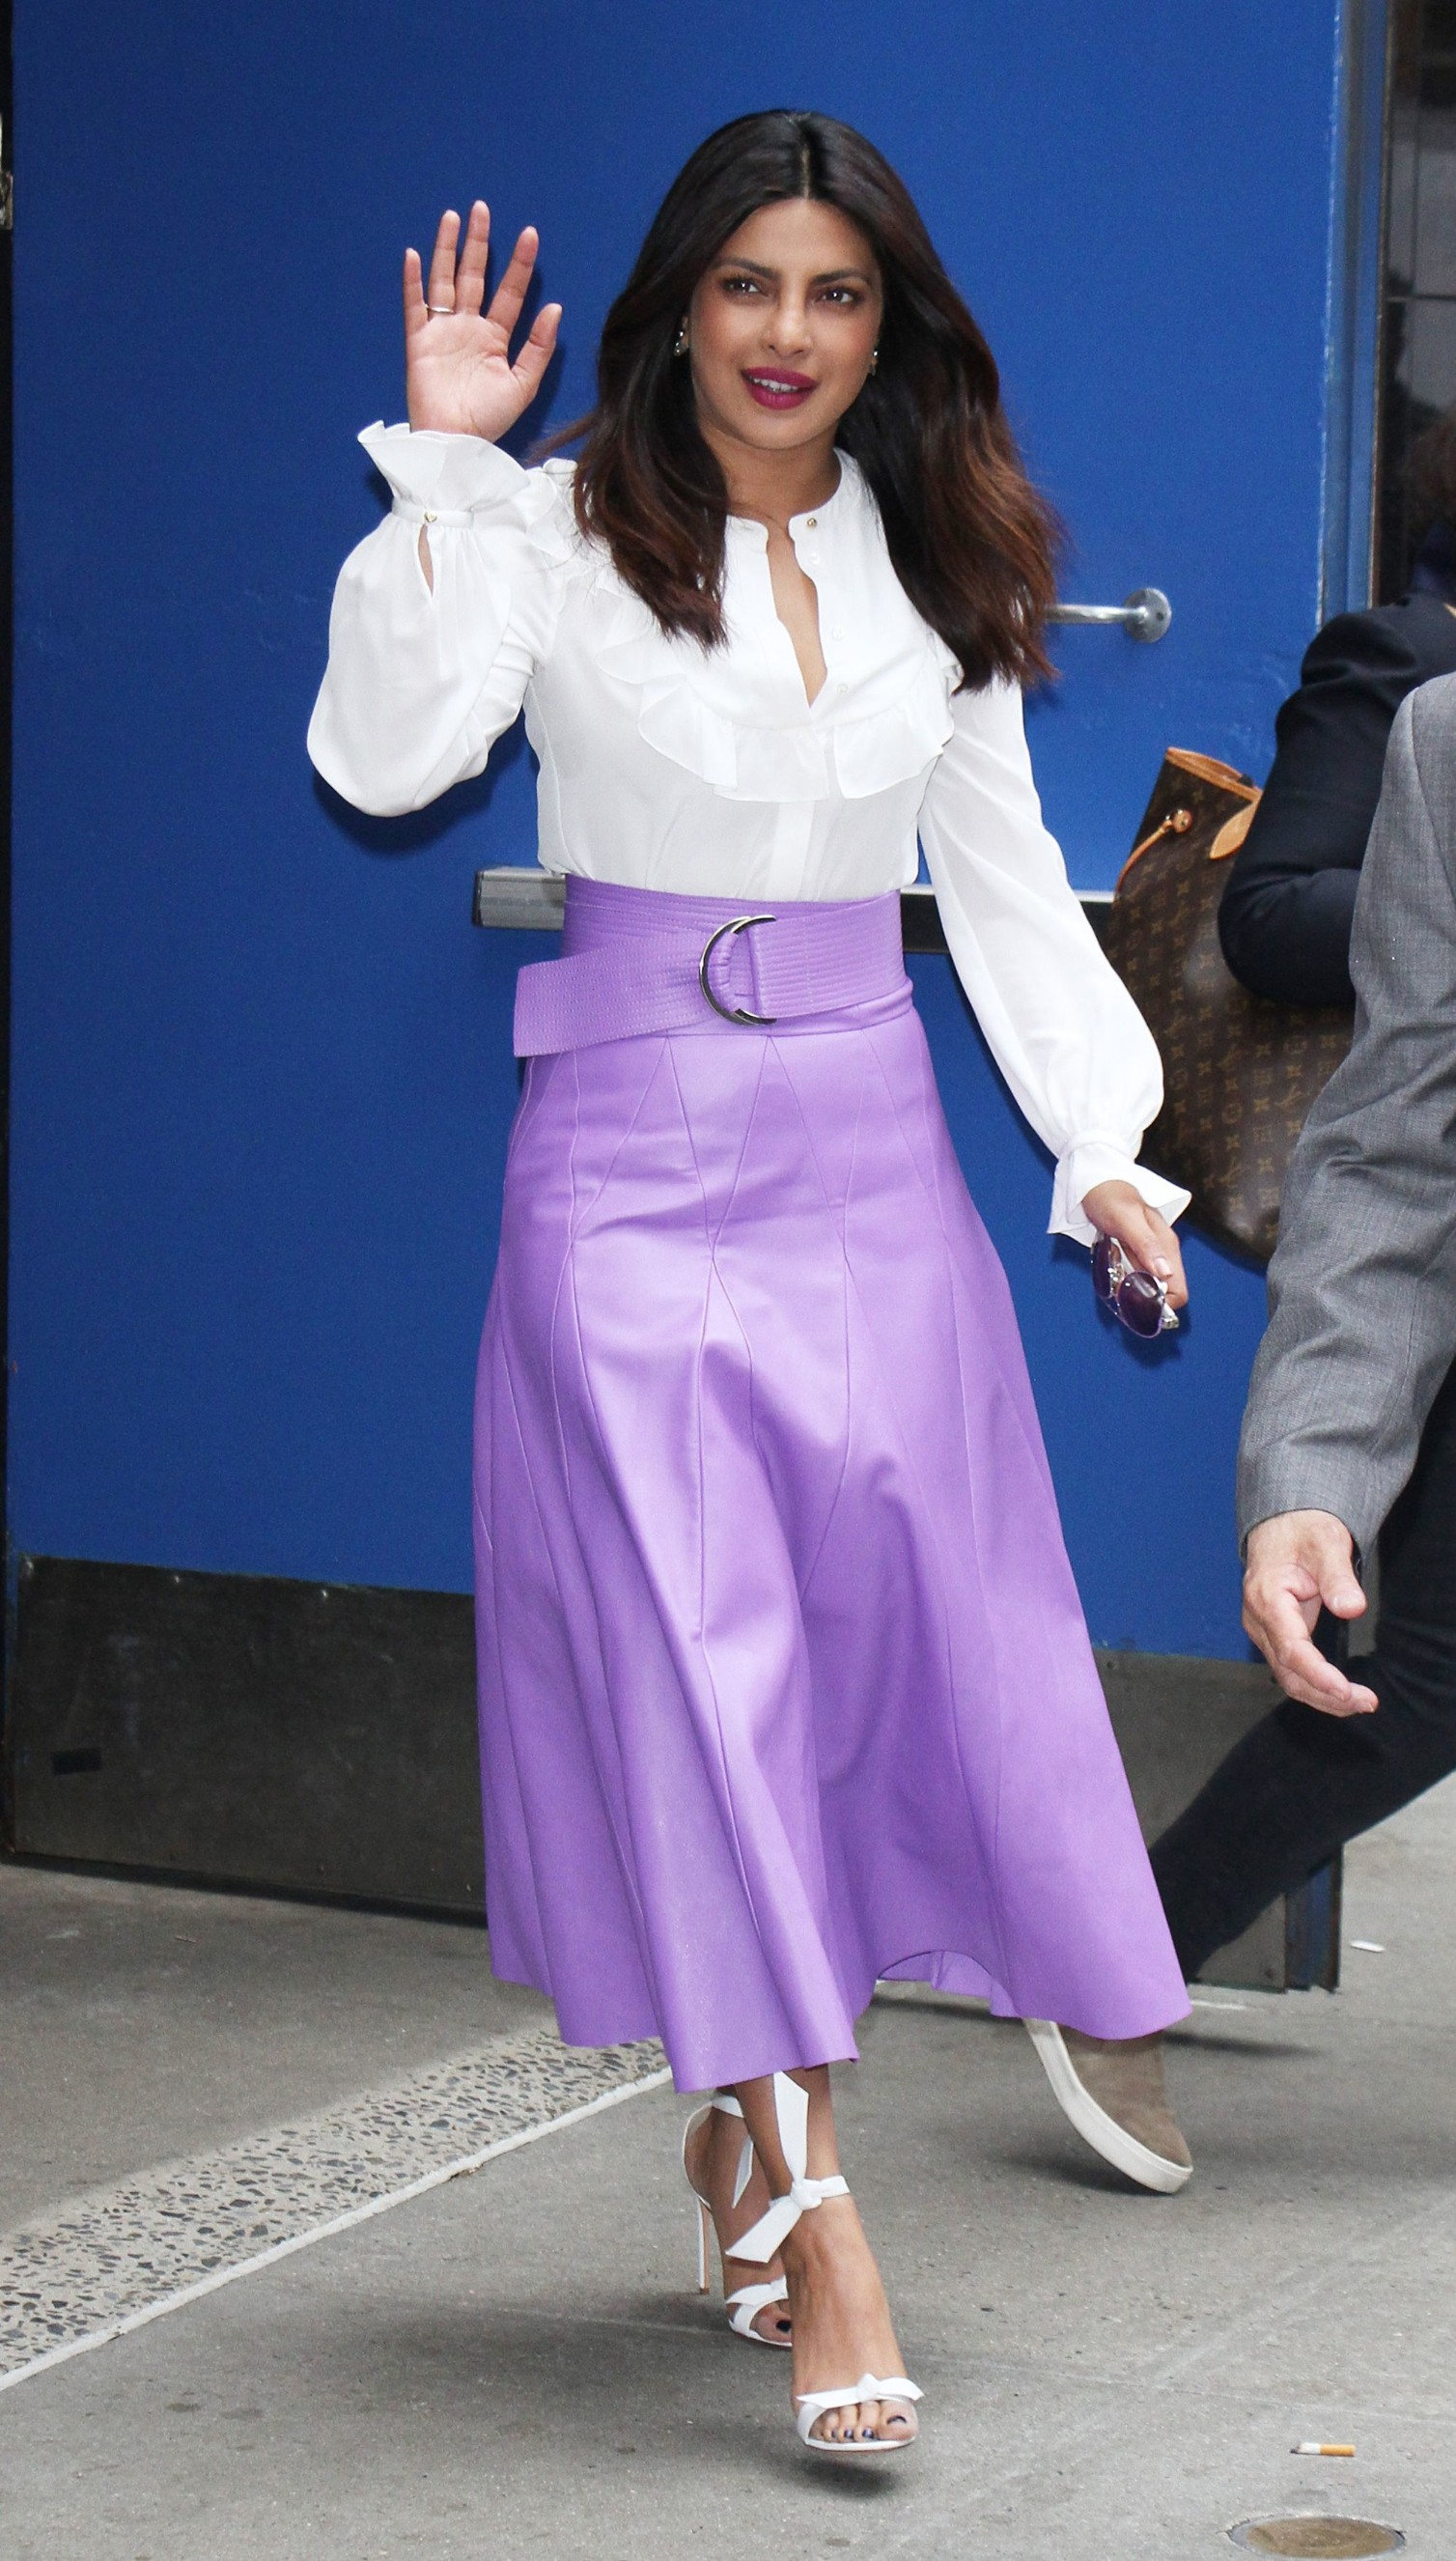 Priyanka Chopra 'Good Morning America' TV show, New York, USA - 22 May 2017, Image: 333229507, License: Rights-managed, Restrictions: , Model Release: no, Credit line: MediaPunch / Shutterstock Editorial / Profimedia